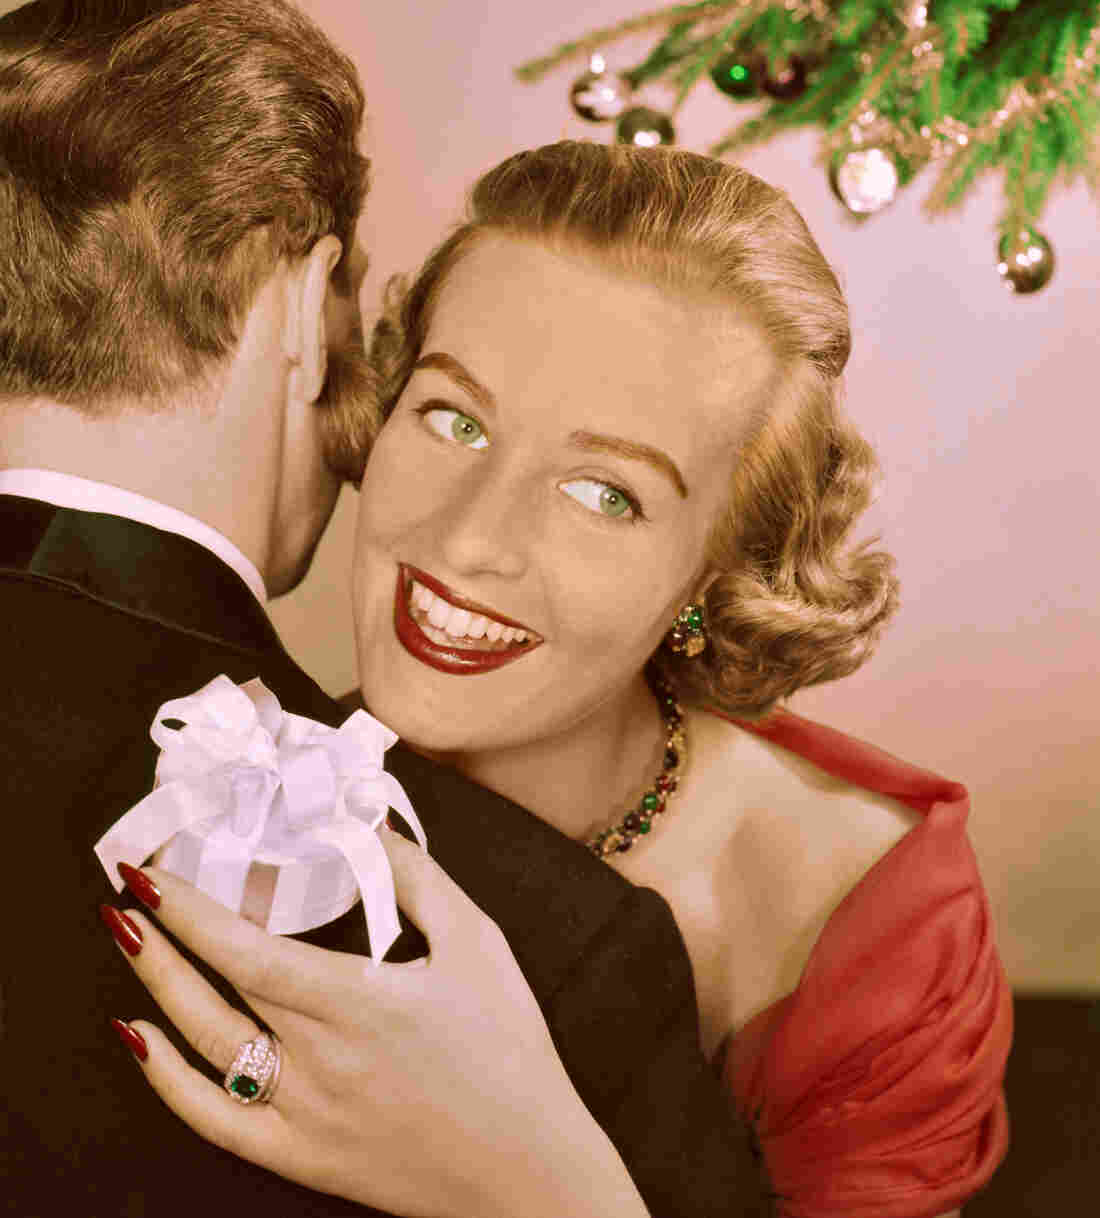 A lady hugs a man whilst she holds onto a Christmas gift wrapped in a bow on December 25, 1955.